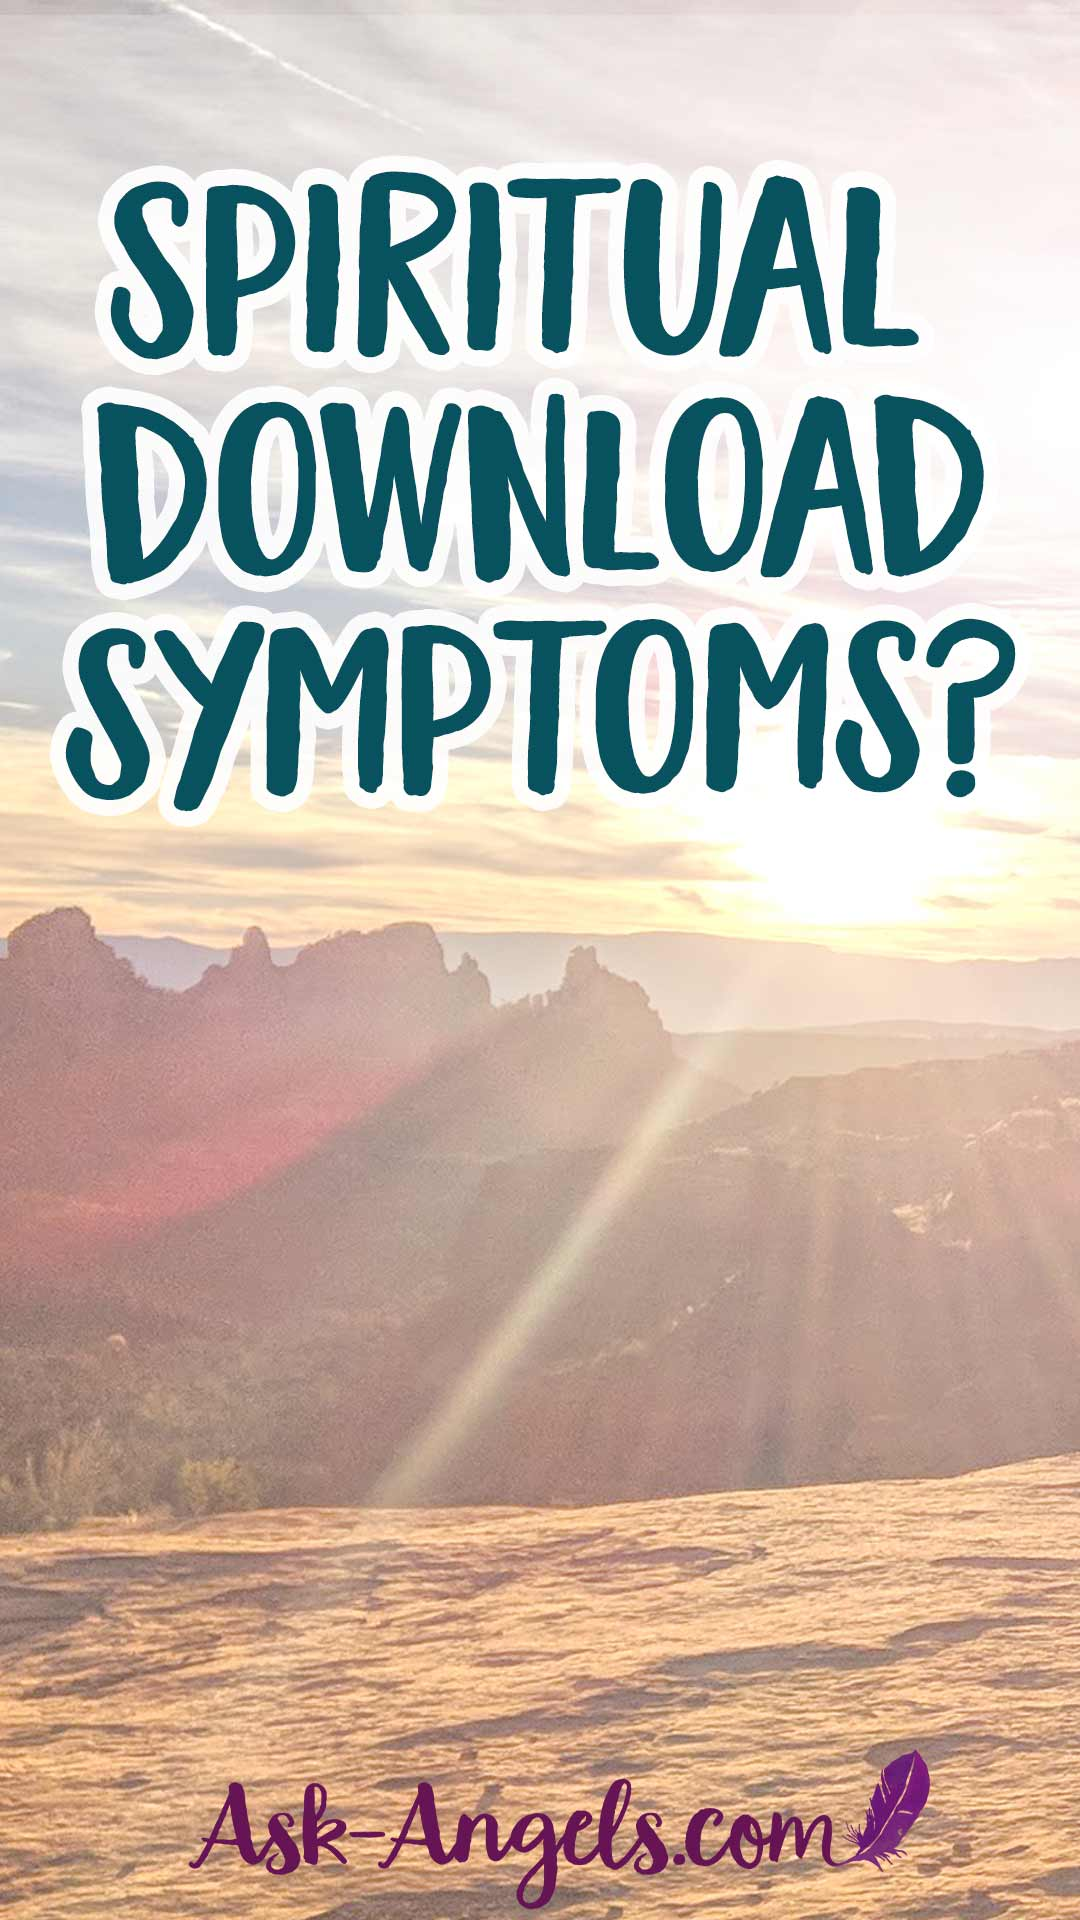 Spiritual Download Symptoms? Read this!